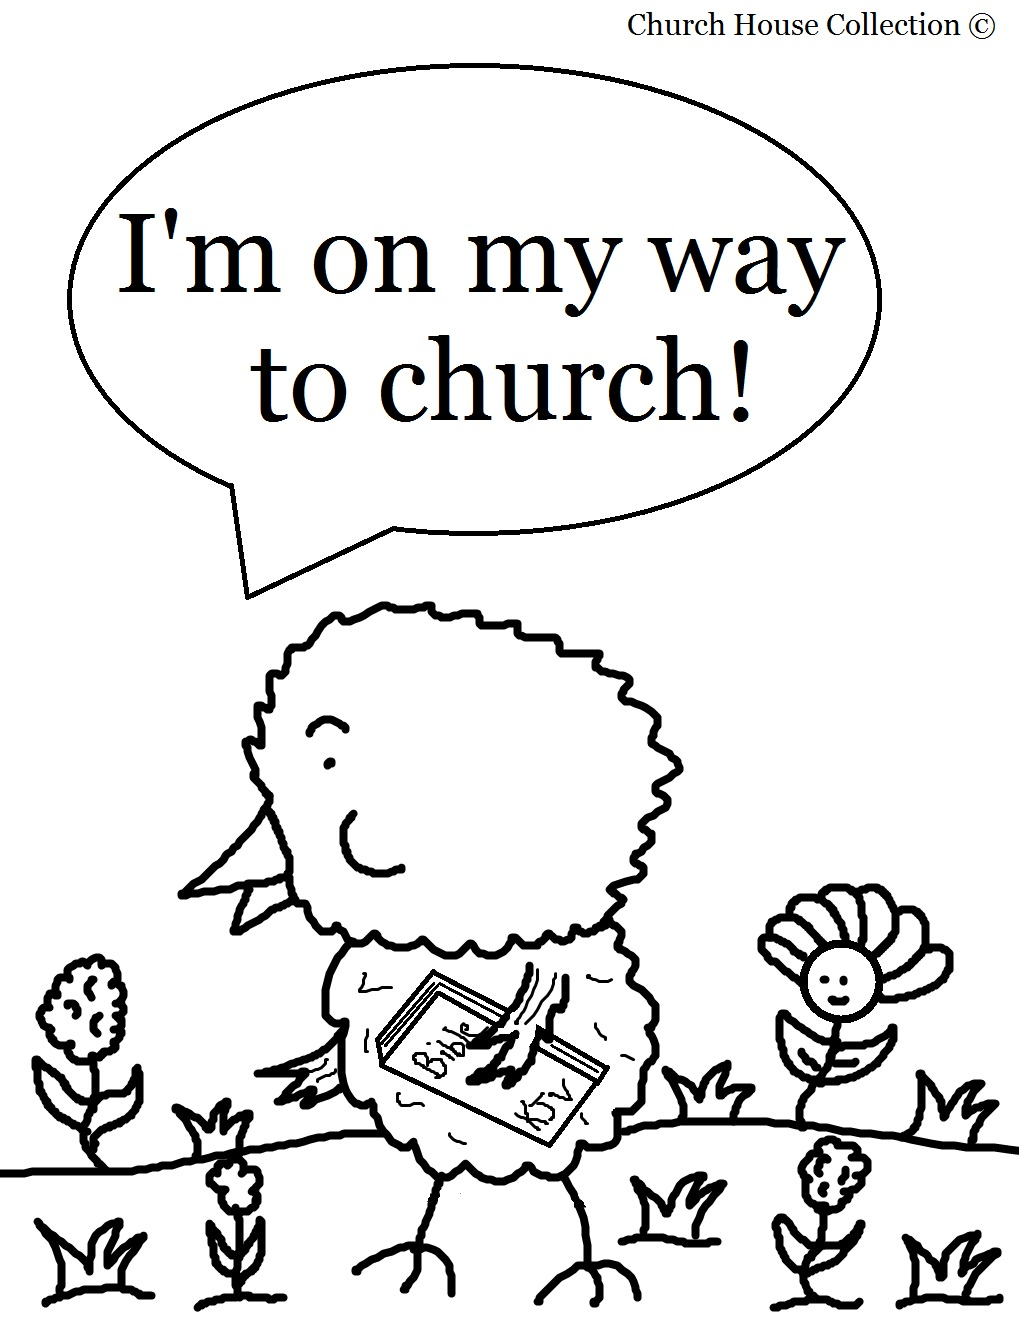 Church House Collection Blog: Easter Chick Coloring Page